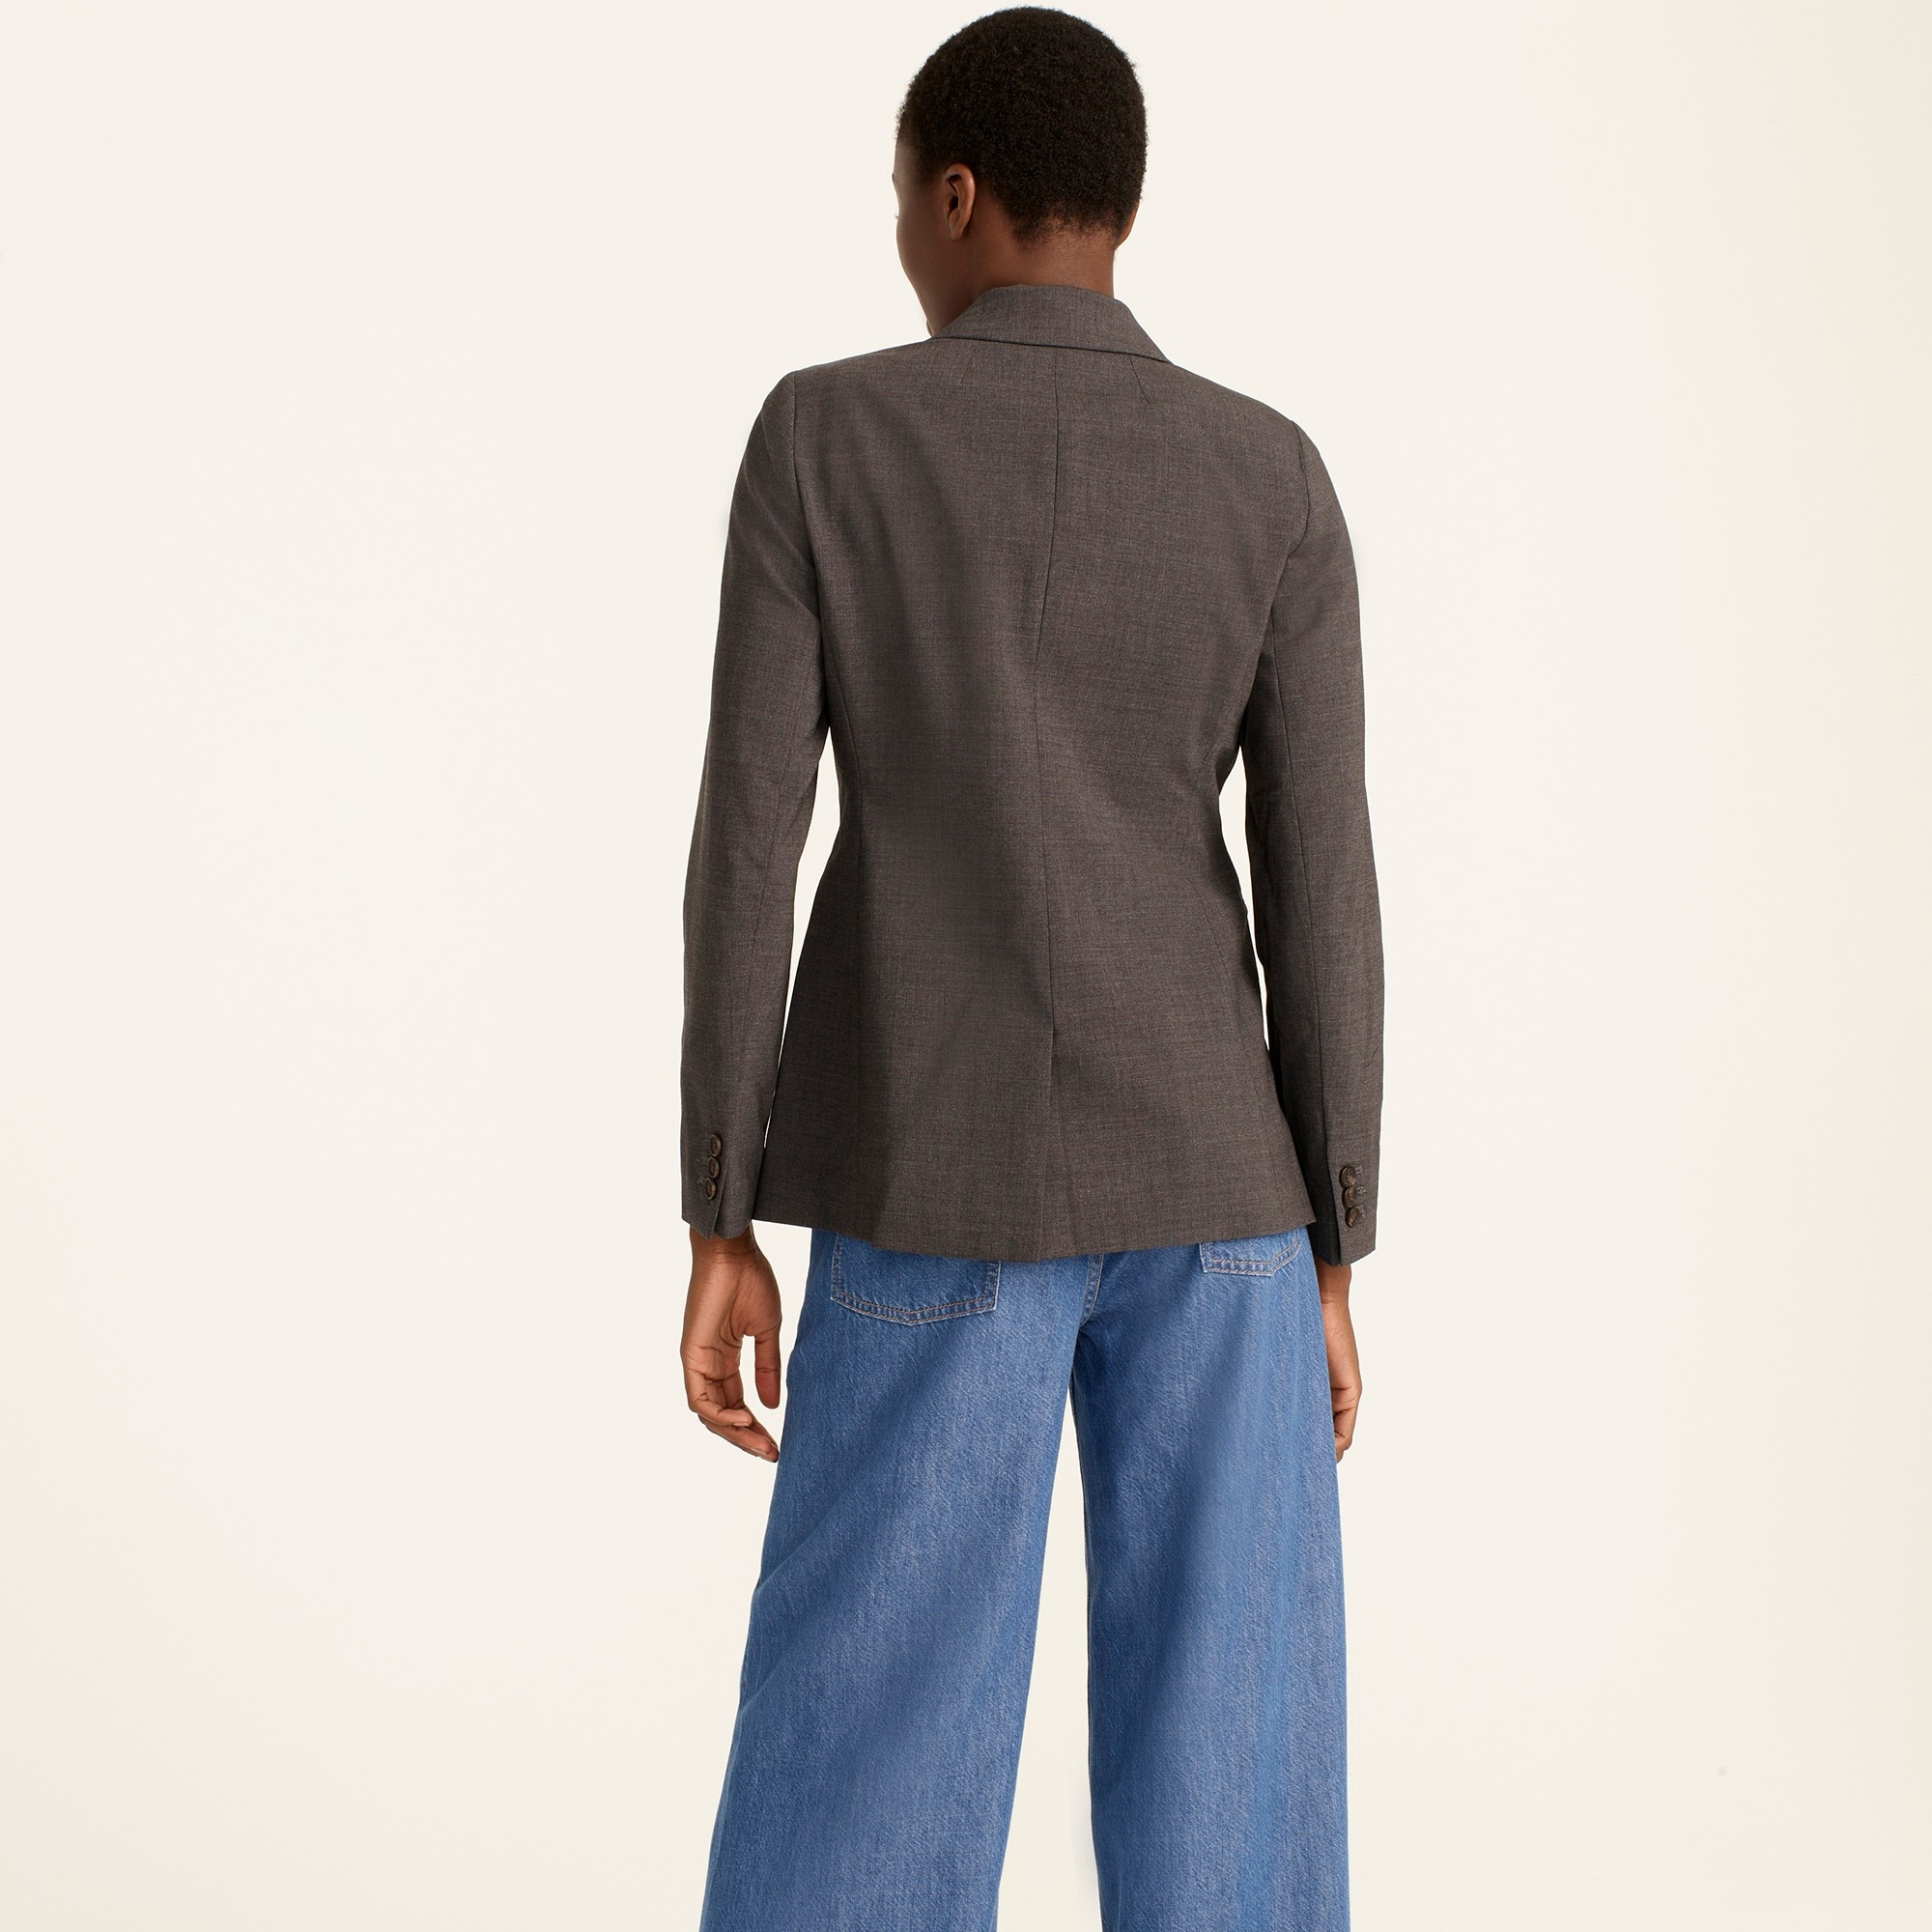 Parke blazer in Italian stretch wool